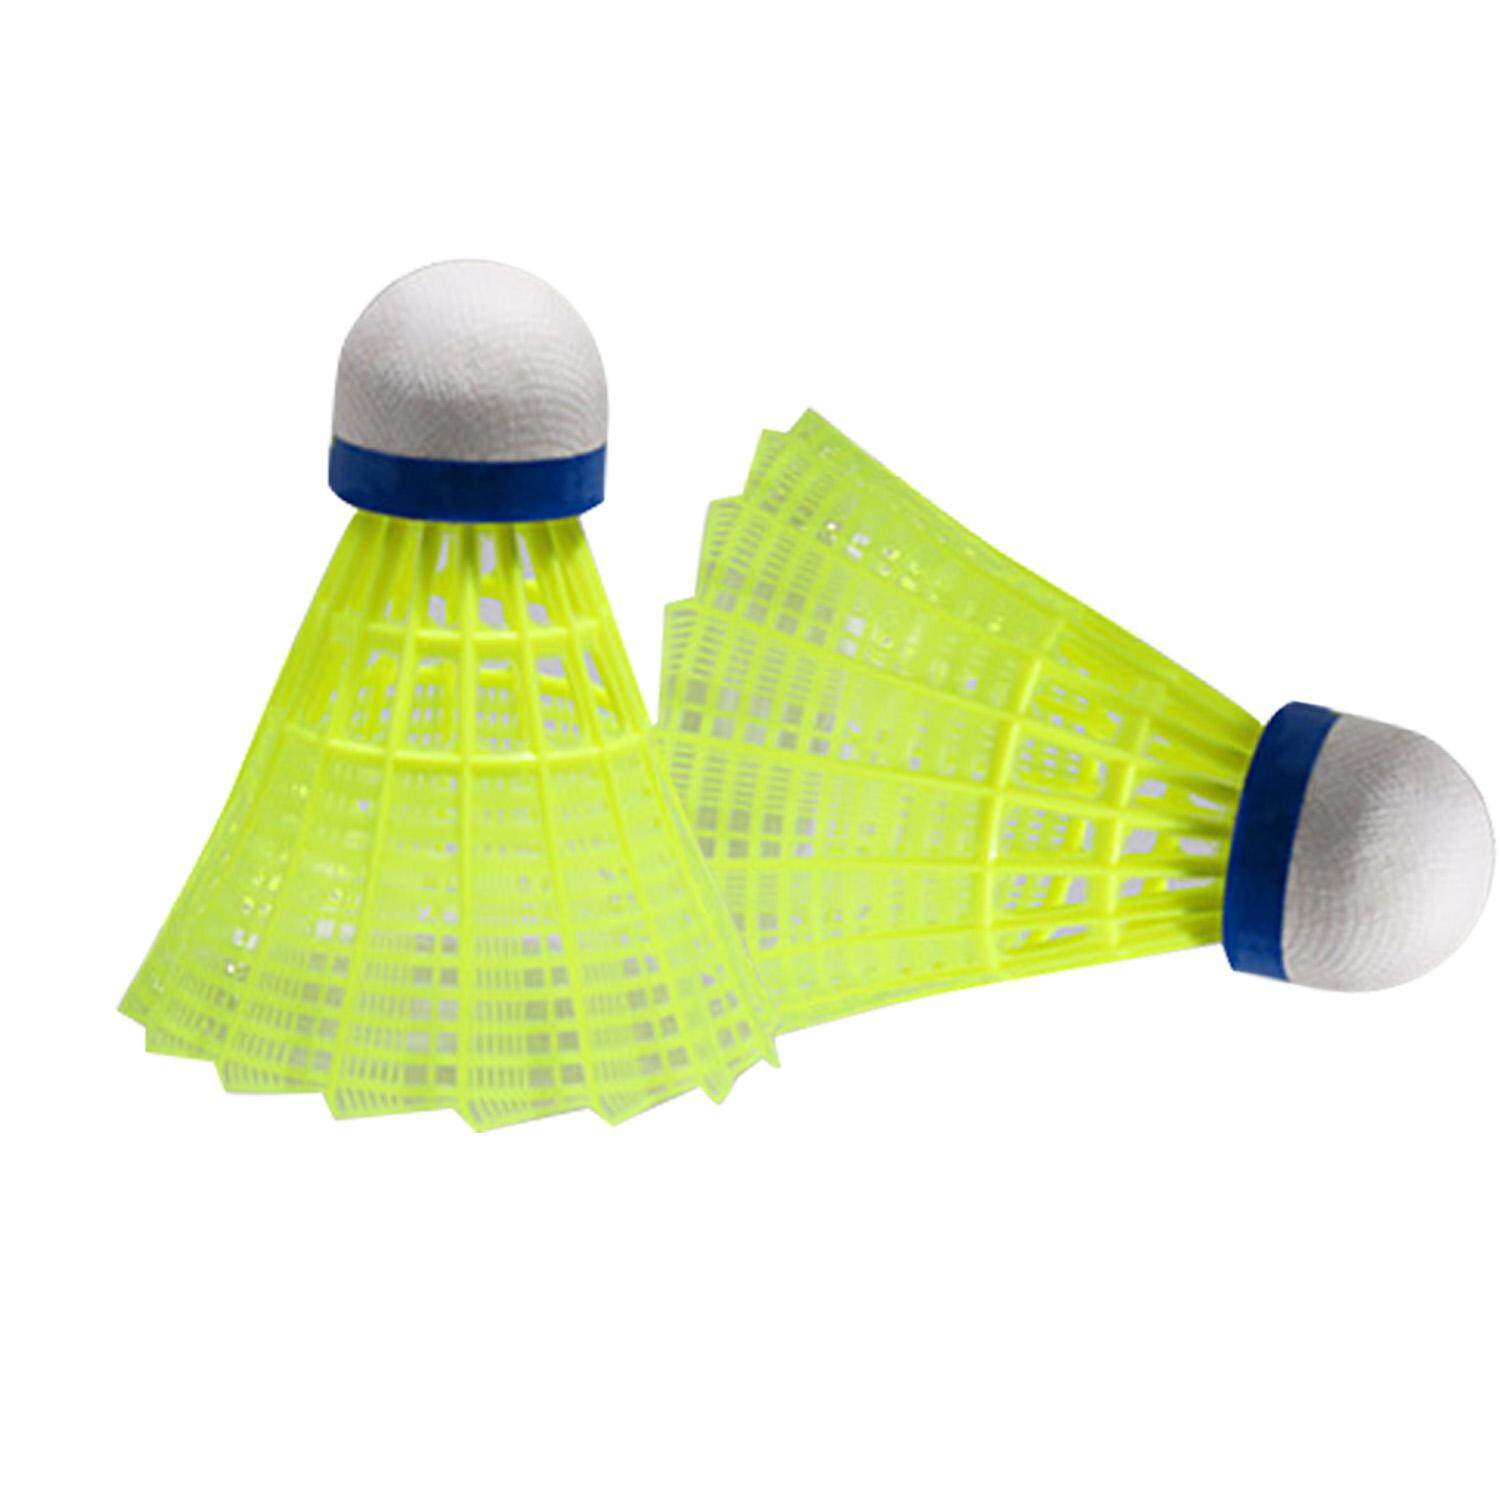 6pcs Flight Steady Balance Badminton Shuttlecocks For Indoor Outdoor Exercise Sports Training Games Yellow By Vococal Shop